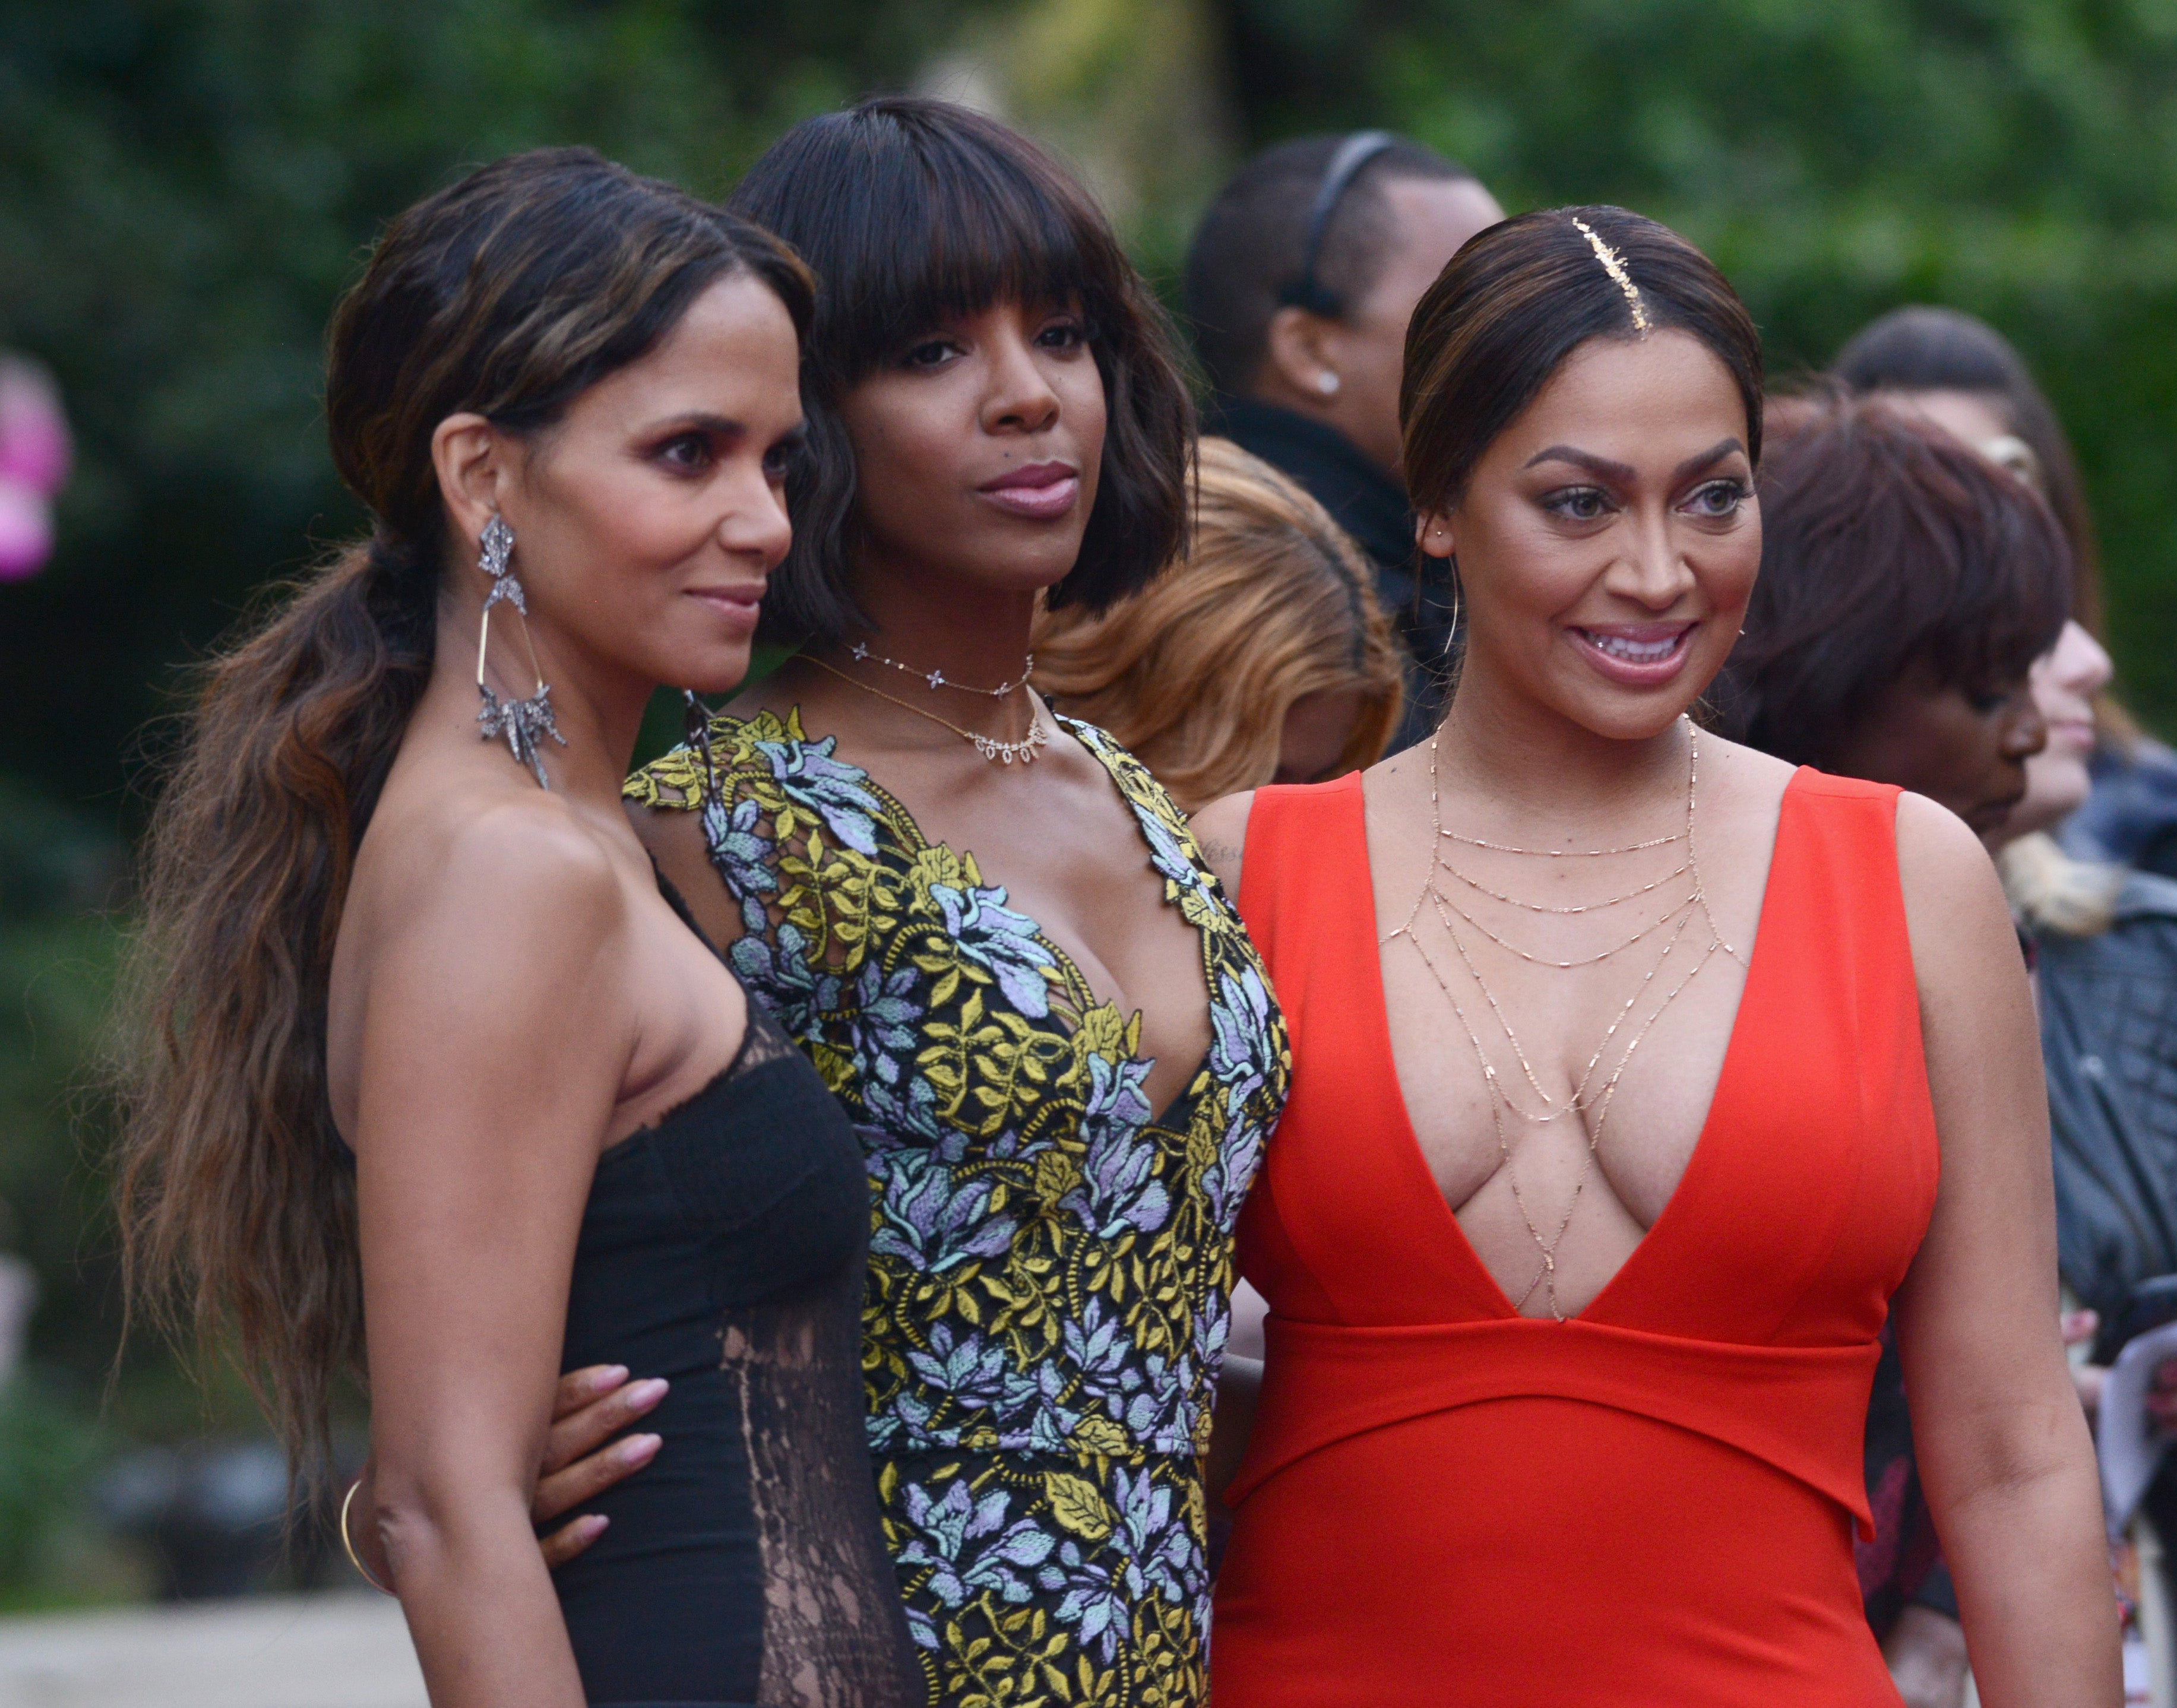 Lala Anthony, Kelly Rowland, Halle Berry and More Celebrate Mothers At VH1's 'Dear Mama' Event